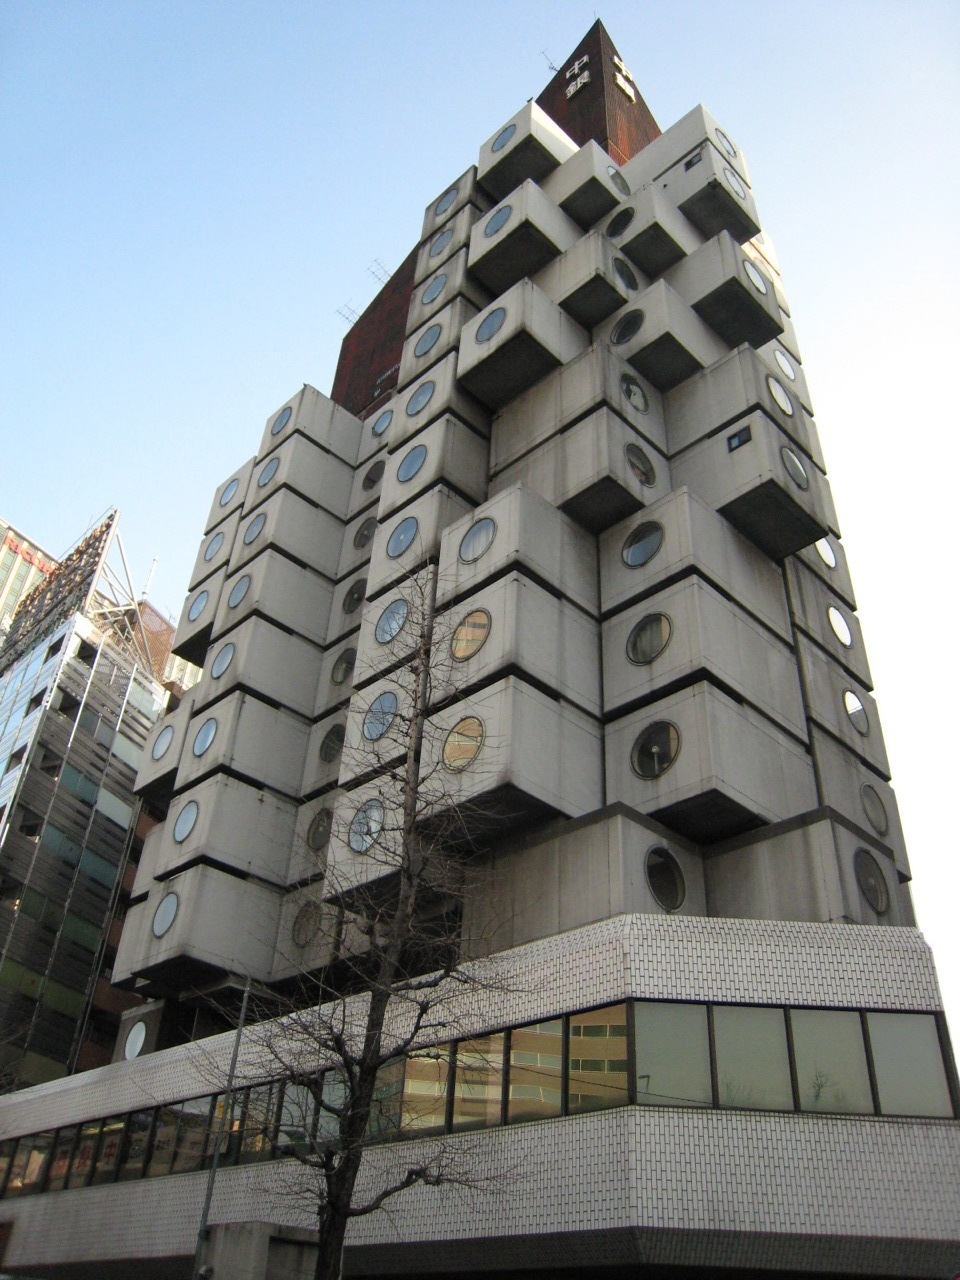 nakagin capsule tower 2007 HD Wallpaper